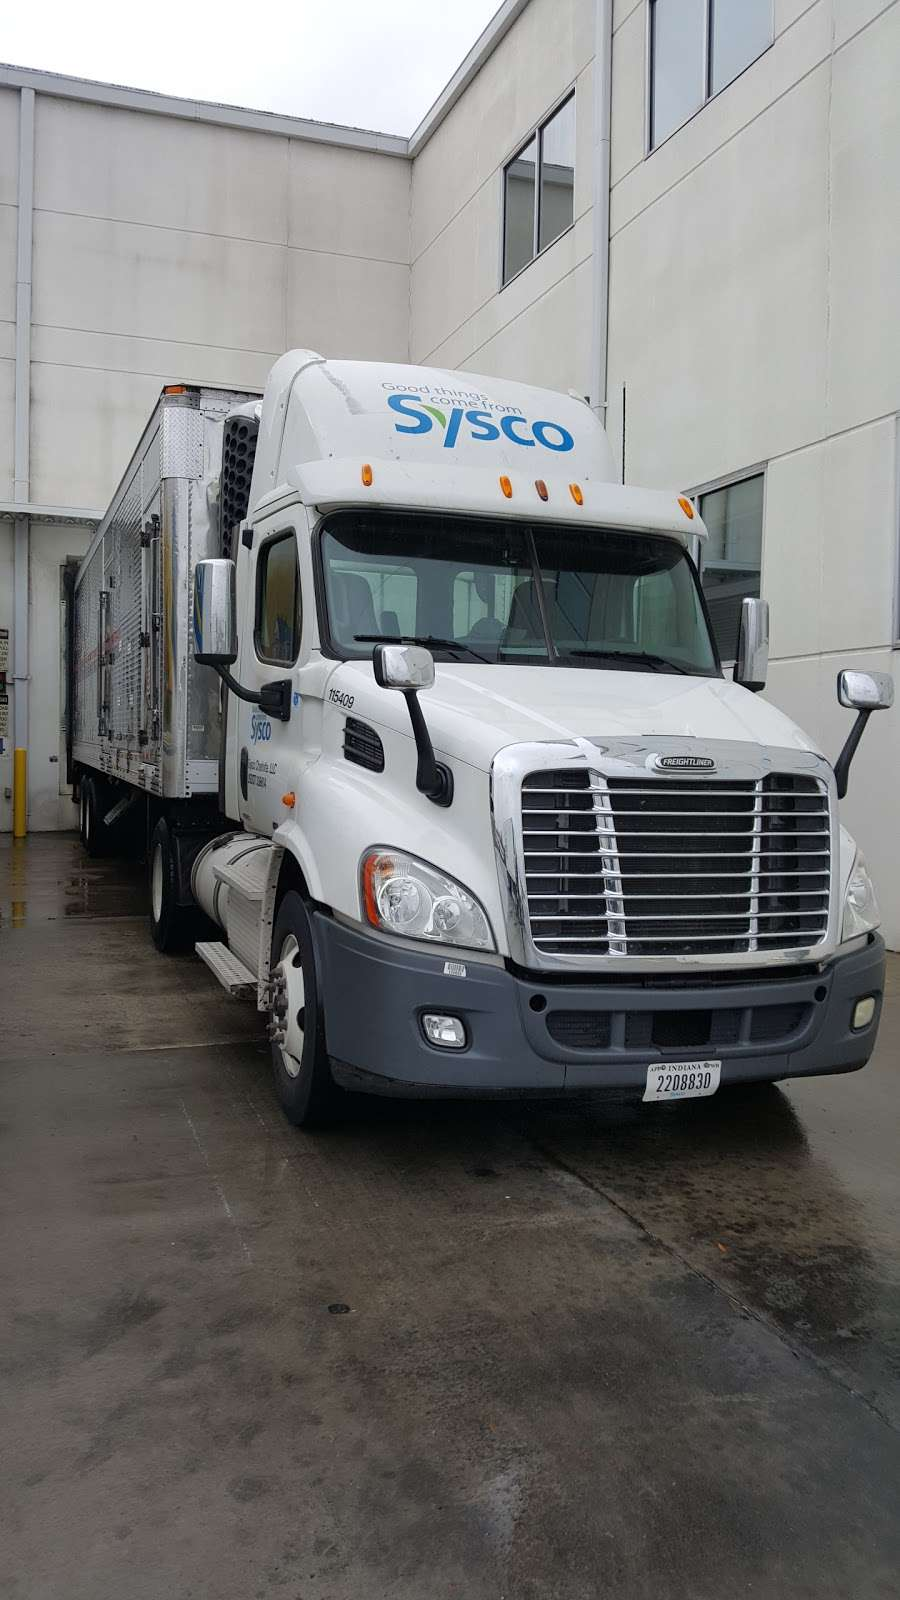 Sysco Food Services of Charlotte LLC - store  | Photo 3 of 10 | Address: 4500 Corporate Dr NW, Concord, NC 28027, USA | Phone: (704) 786-4500